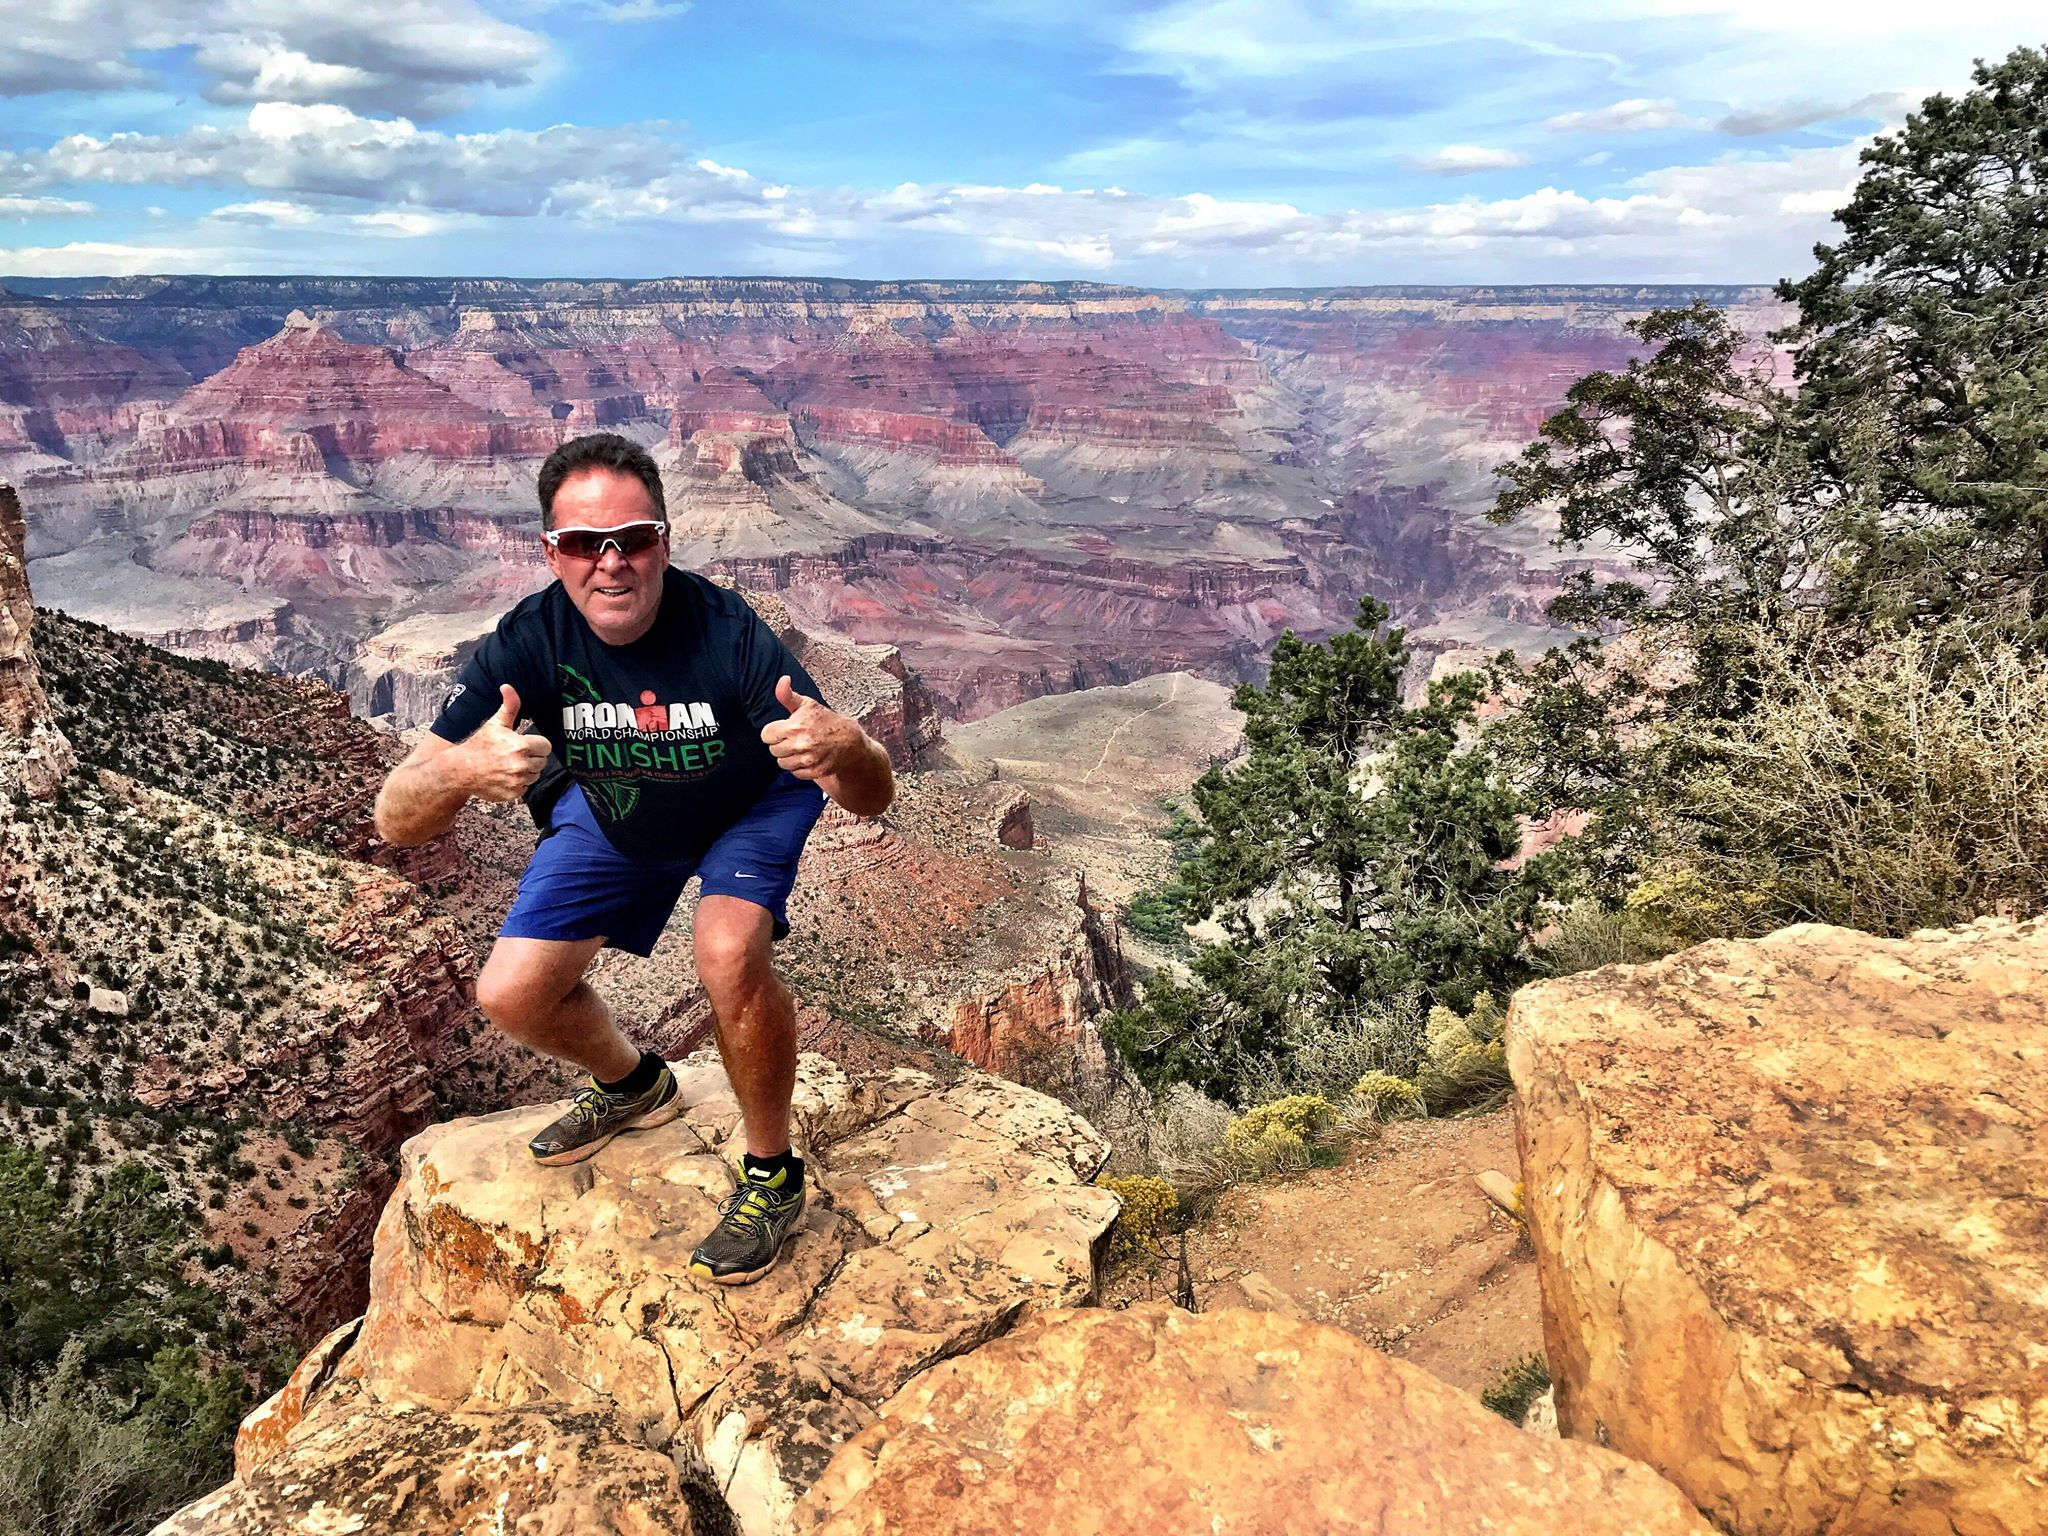 Jack Daly did the Grand Canyon, rim to rim to rim, in 2018 and said he's making plans to do it again. Photo: Courtesy of Jack Daly